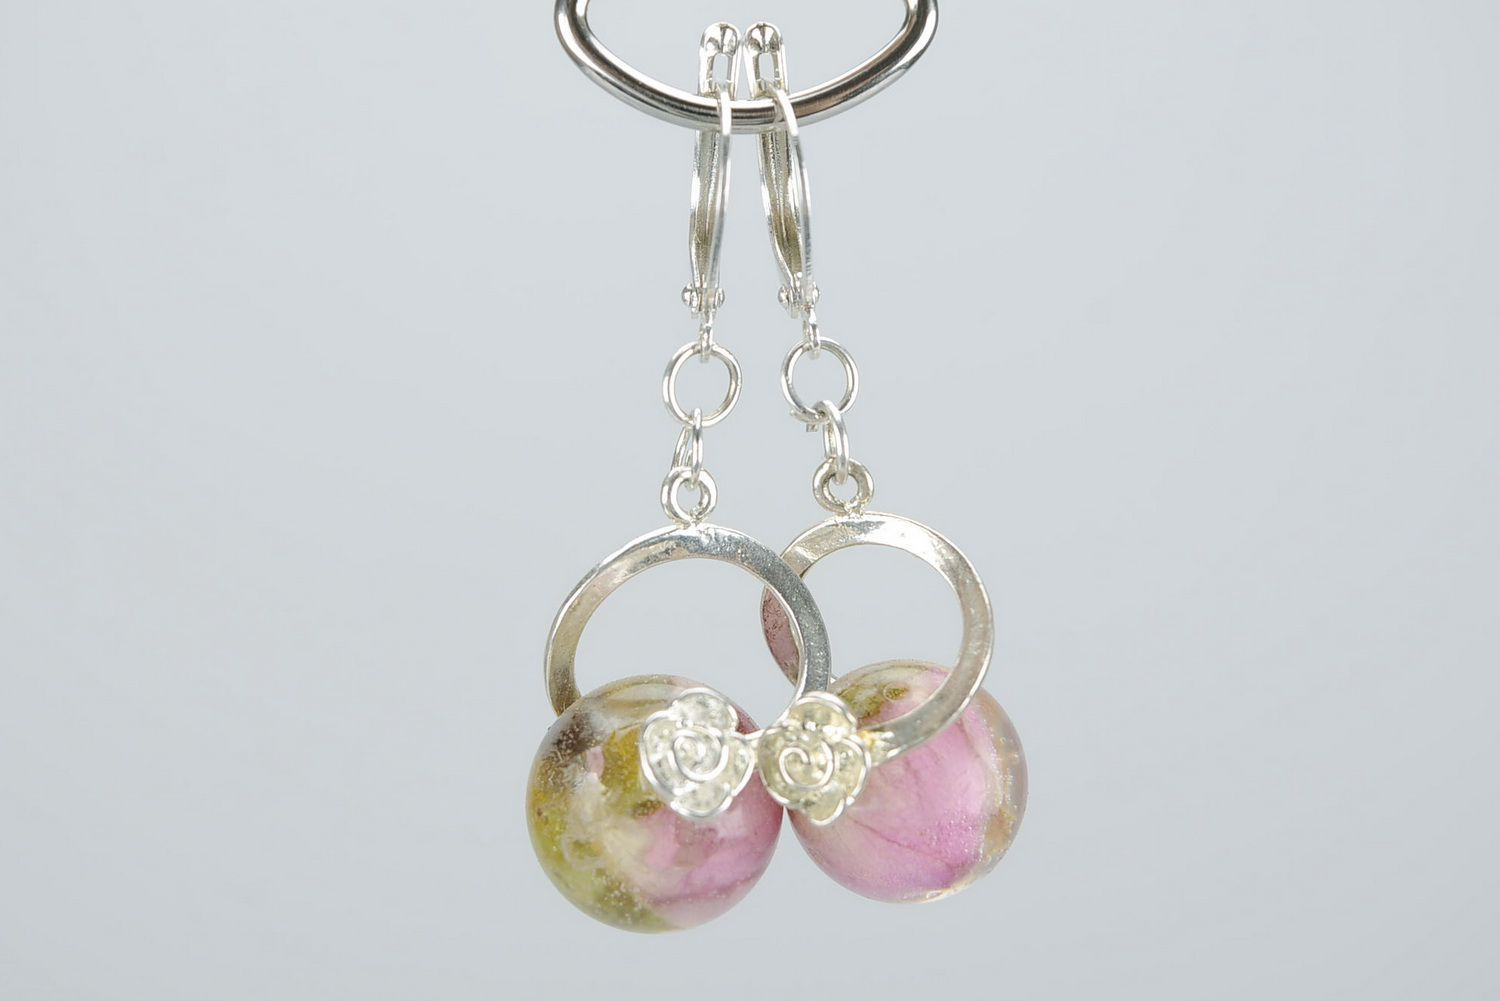 dangle earrings Earrings made from buds of a tea rose - MADEheart.com